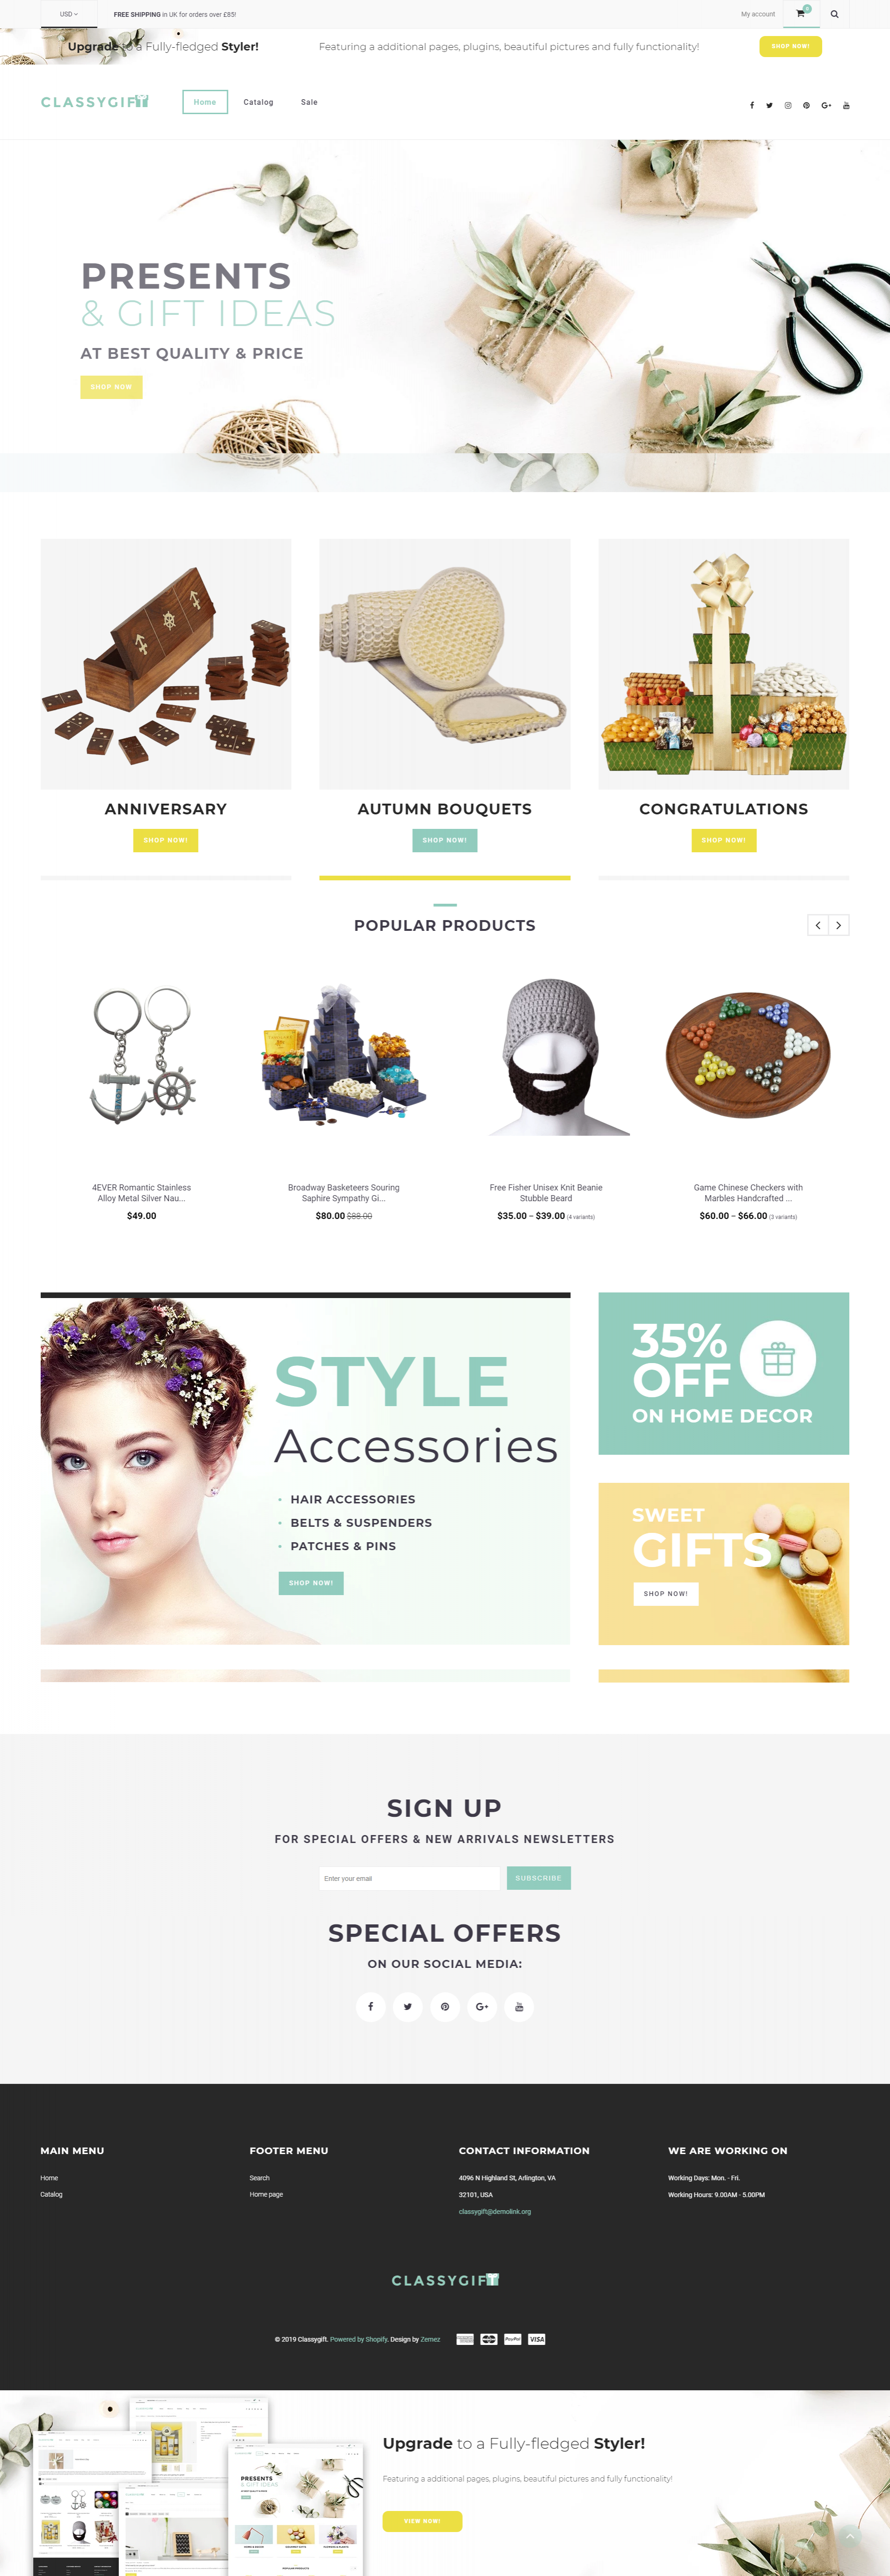 Classygift - Free Gifts & Accessories Shopify Theme